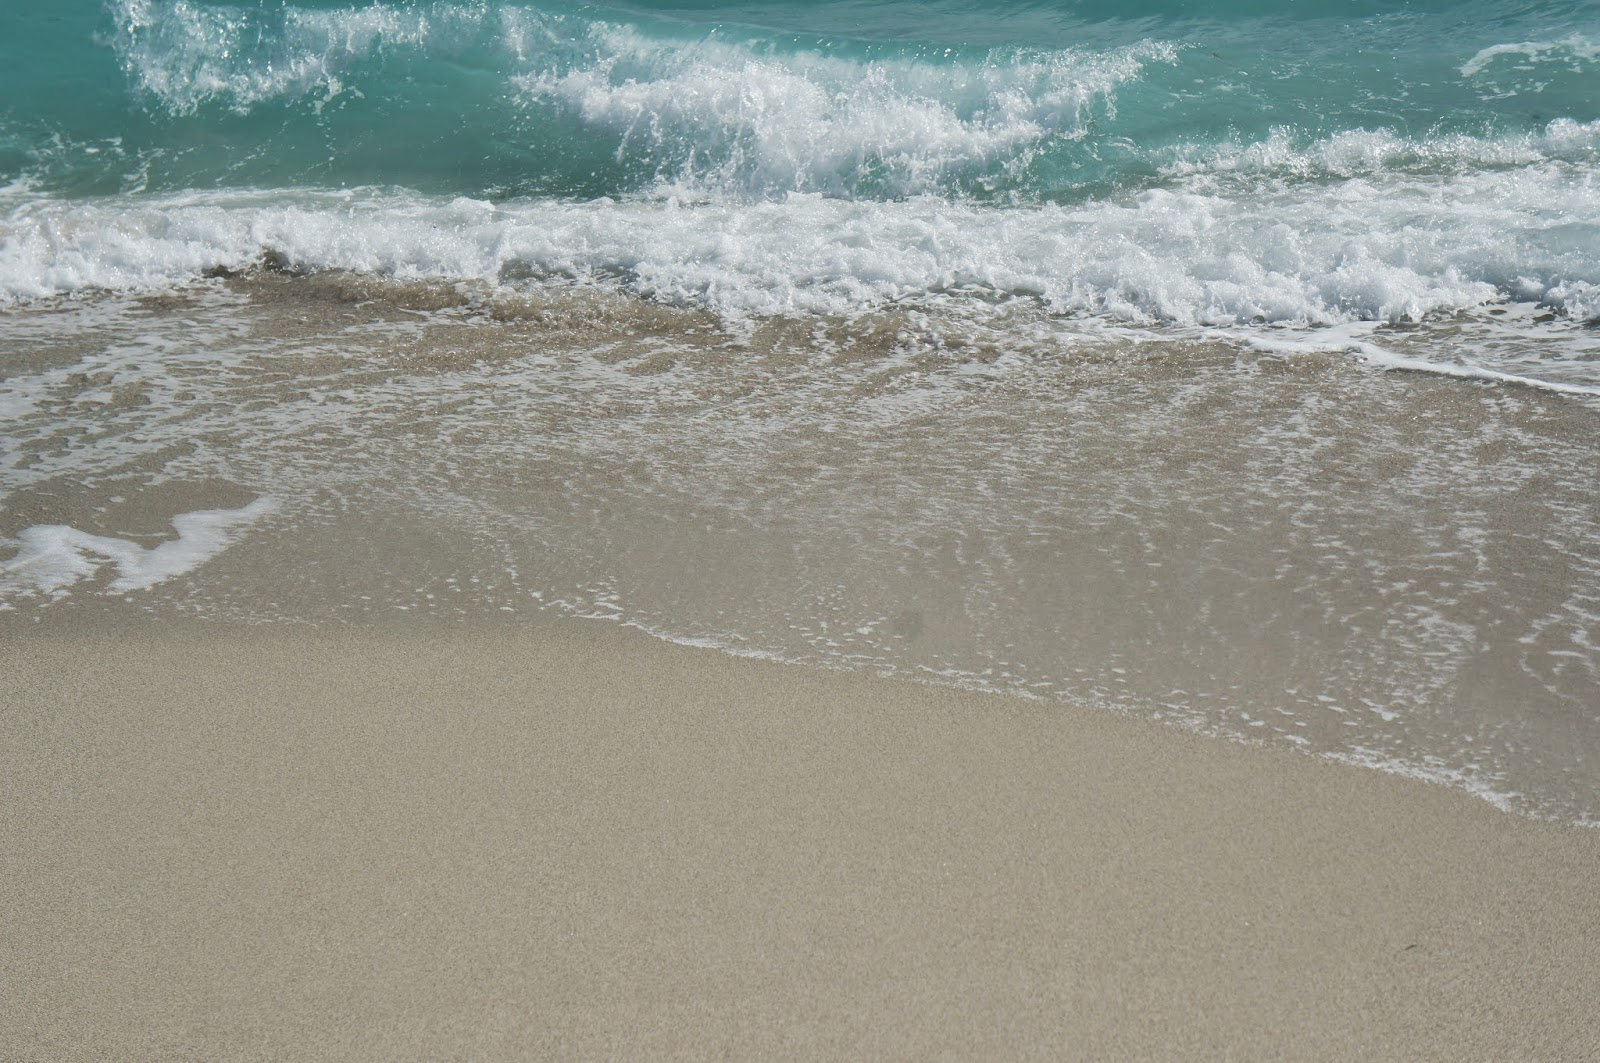 Public Domain Photos Of Miami South Beach Sea Pictures High Resolution Downloadable Sand Waves Foot Prints In The